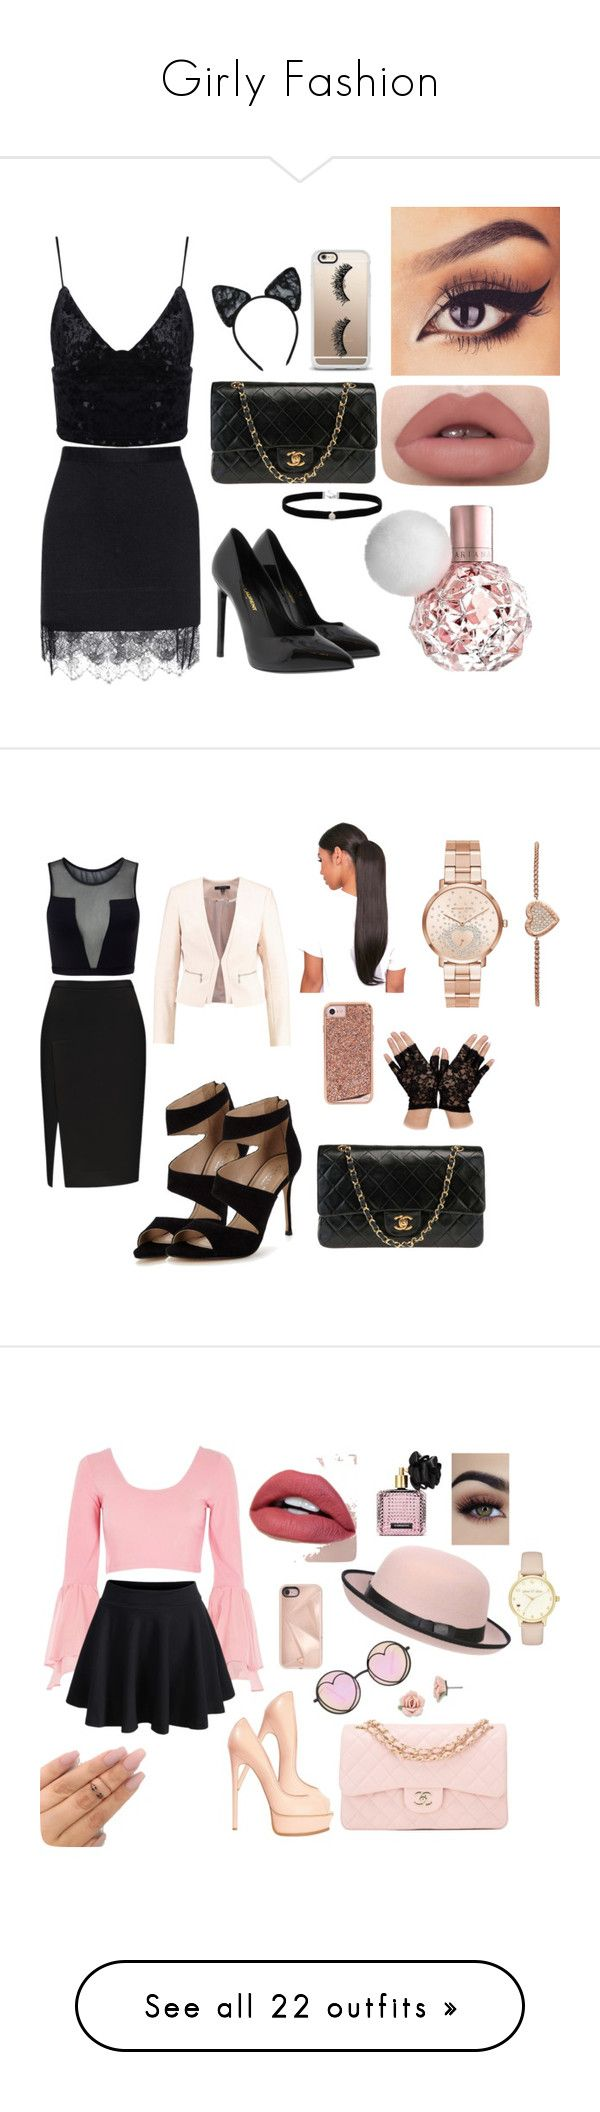 """""""Girly Fashion"""" by brauerisabelle on Polyvore featuring Carven, Yves Saint Laurent, Chanel, Maison Close, Casetify, Amanda Rose Collection, Varley, Carvela, Case-Mate and Michael Kors"""